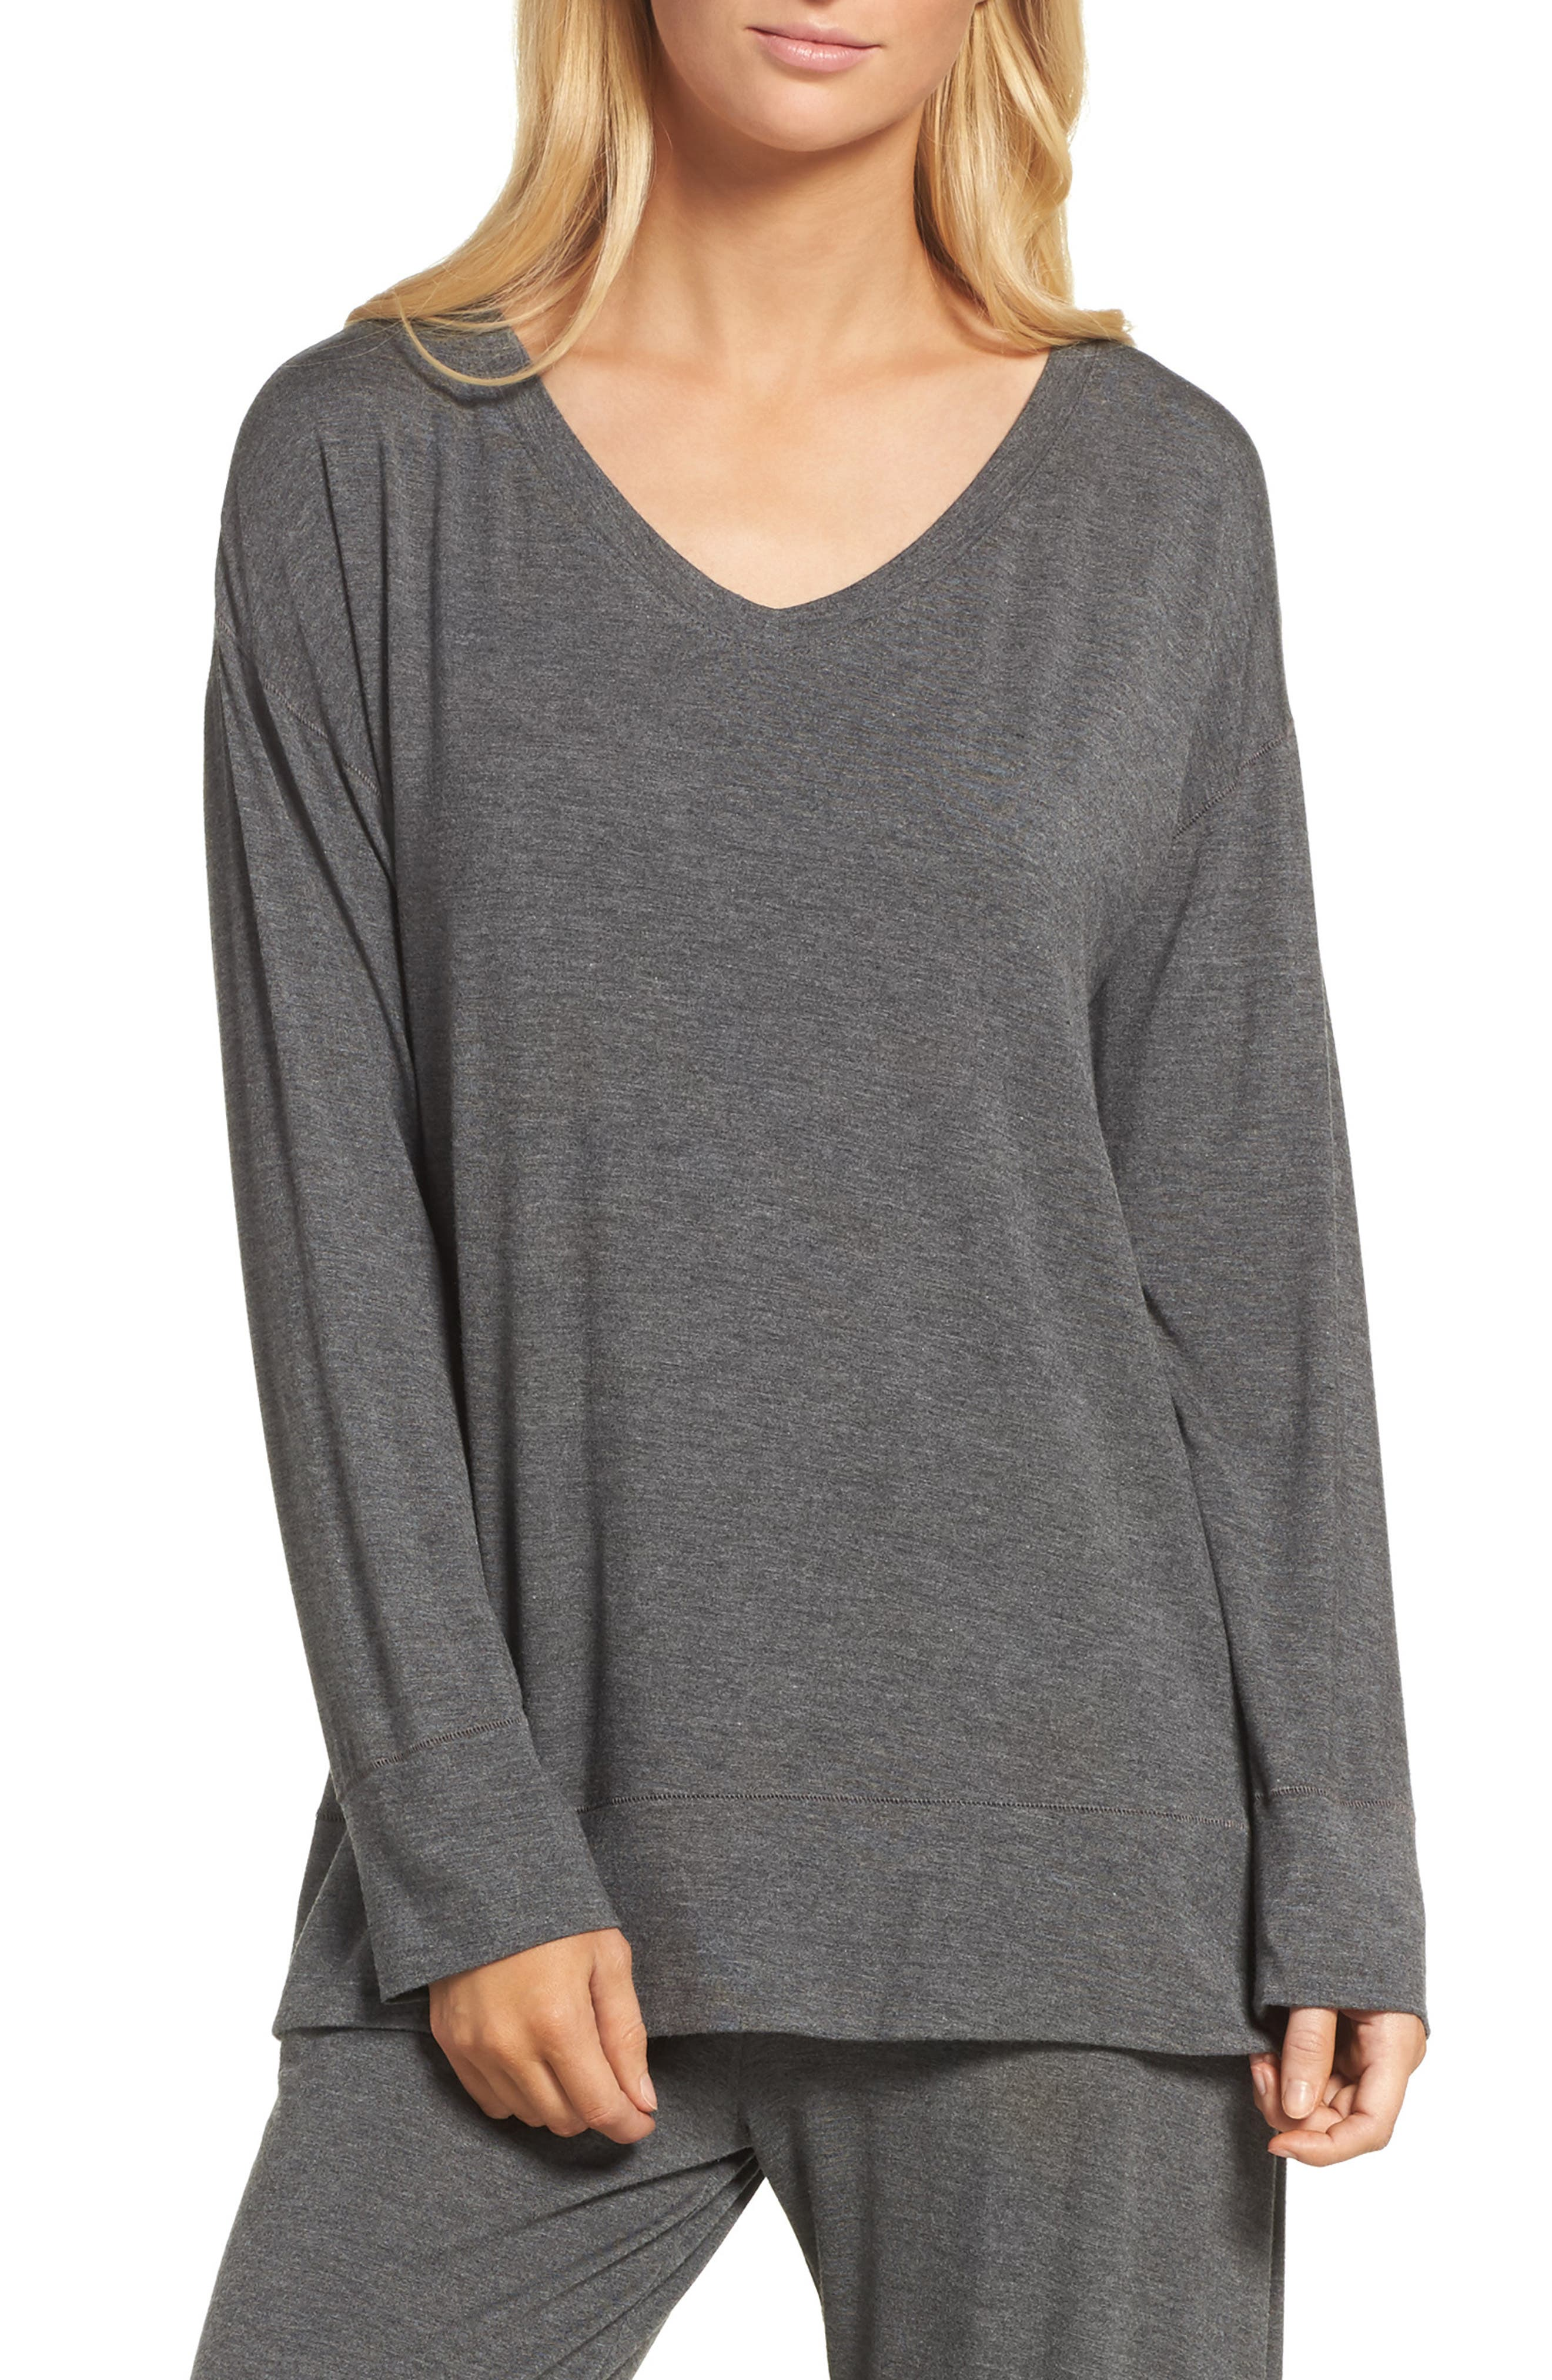 Lounge Top,                         Main,                         color, Charcoal Heather